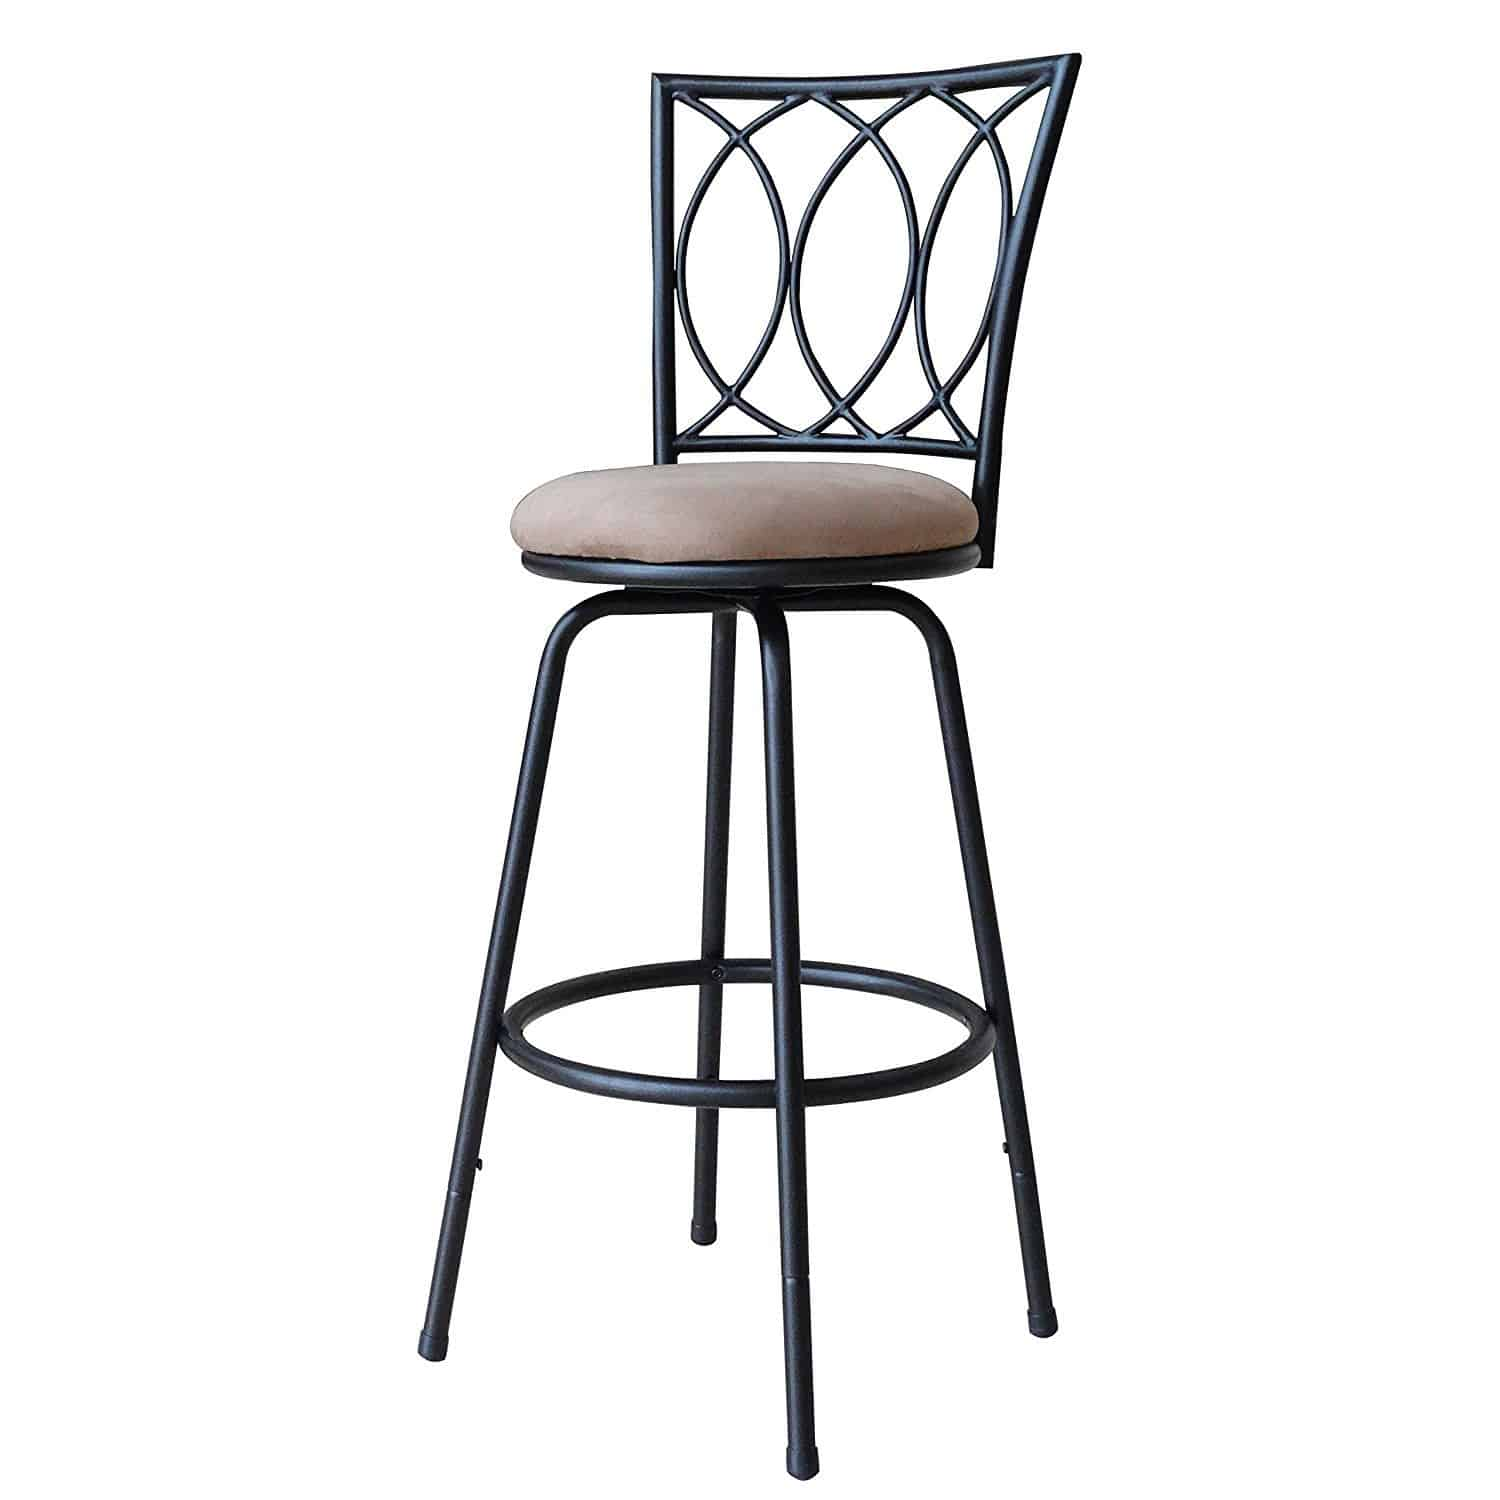 Choosing The Best Tall Stools